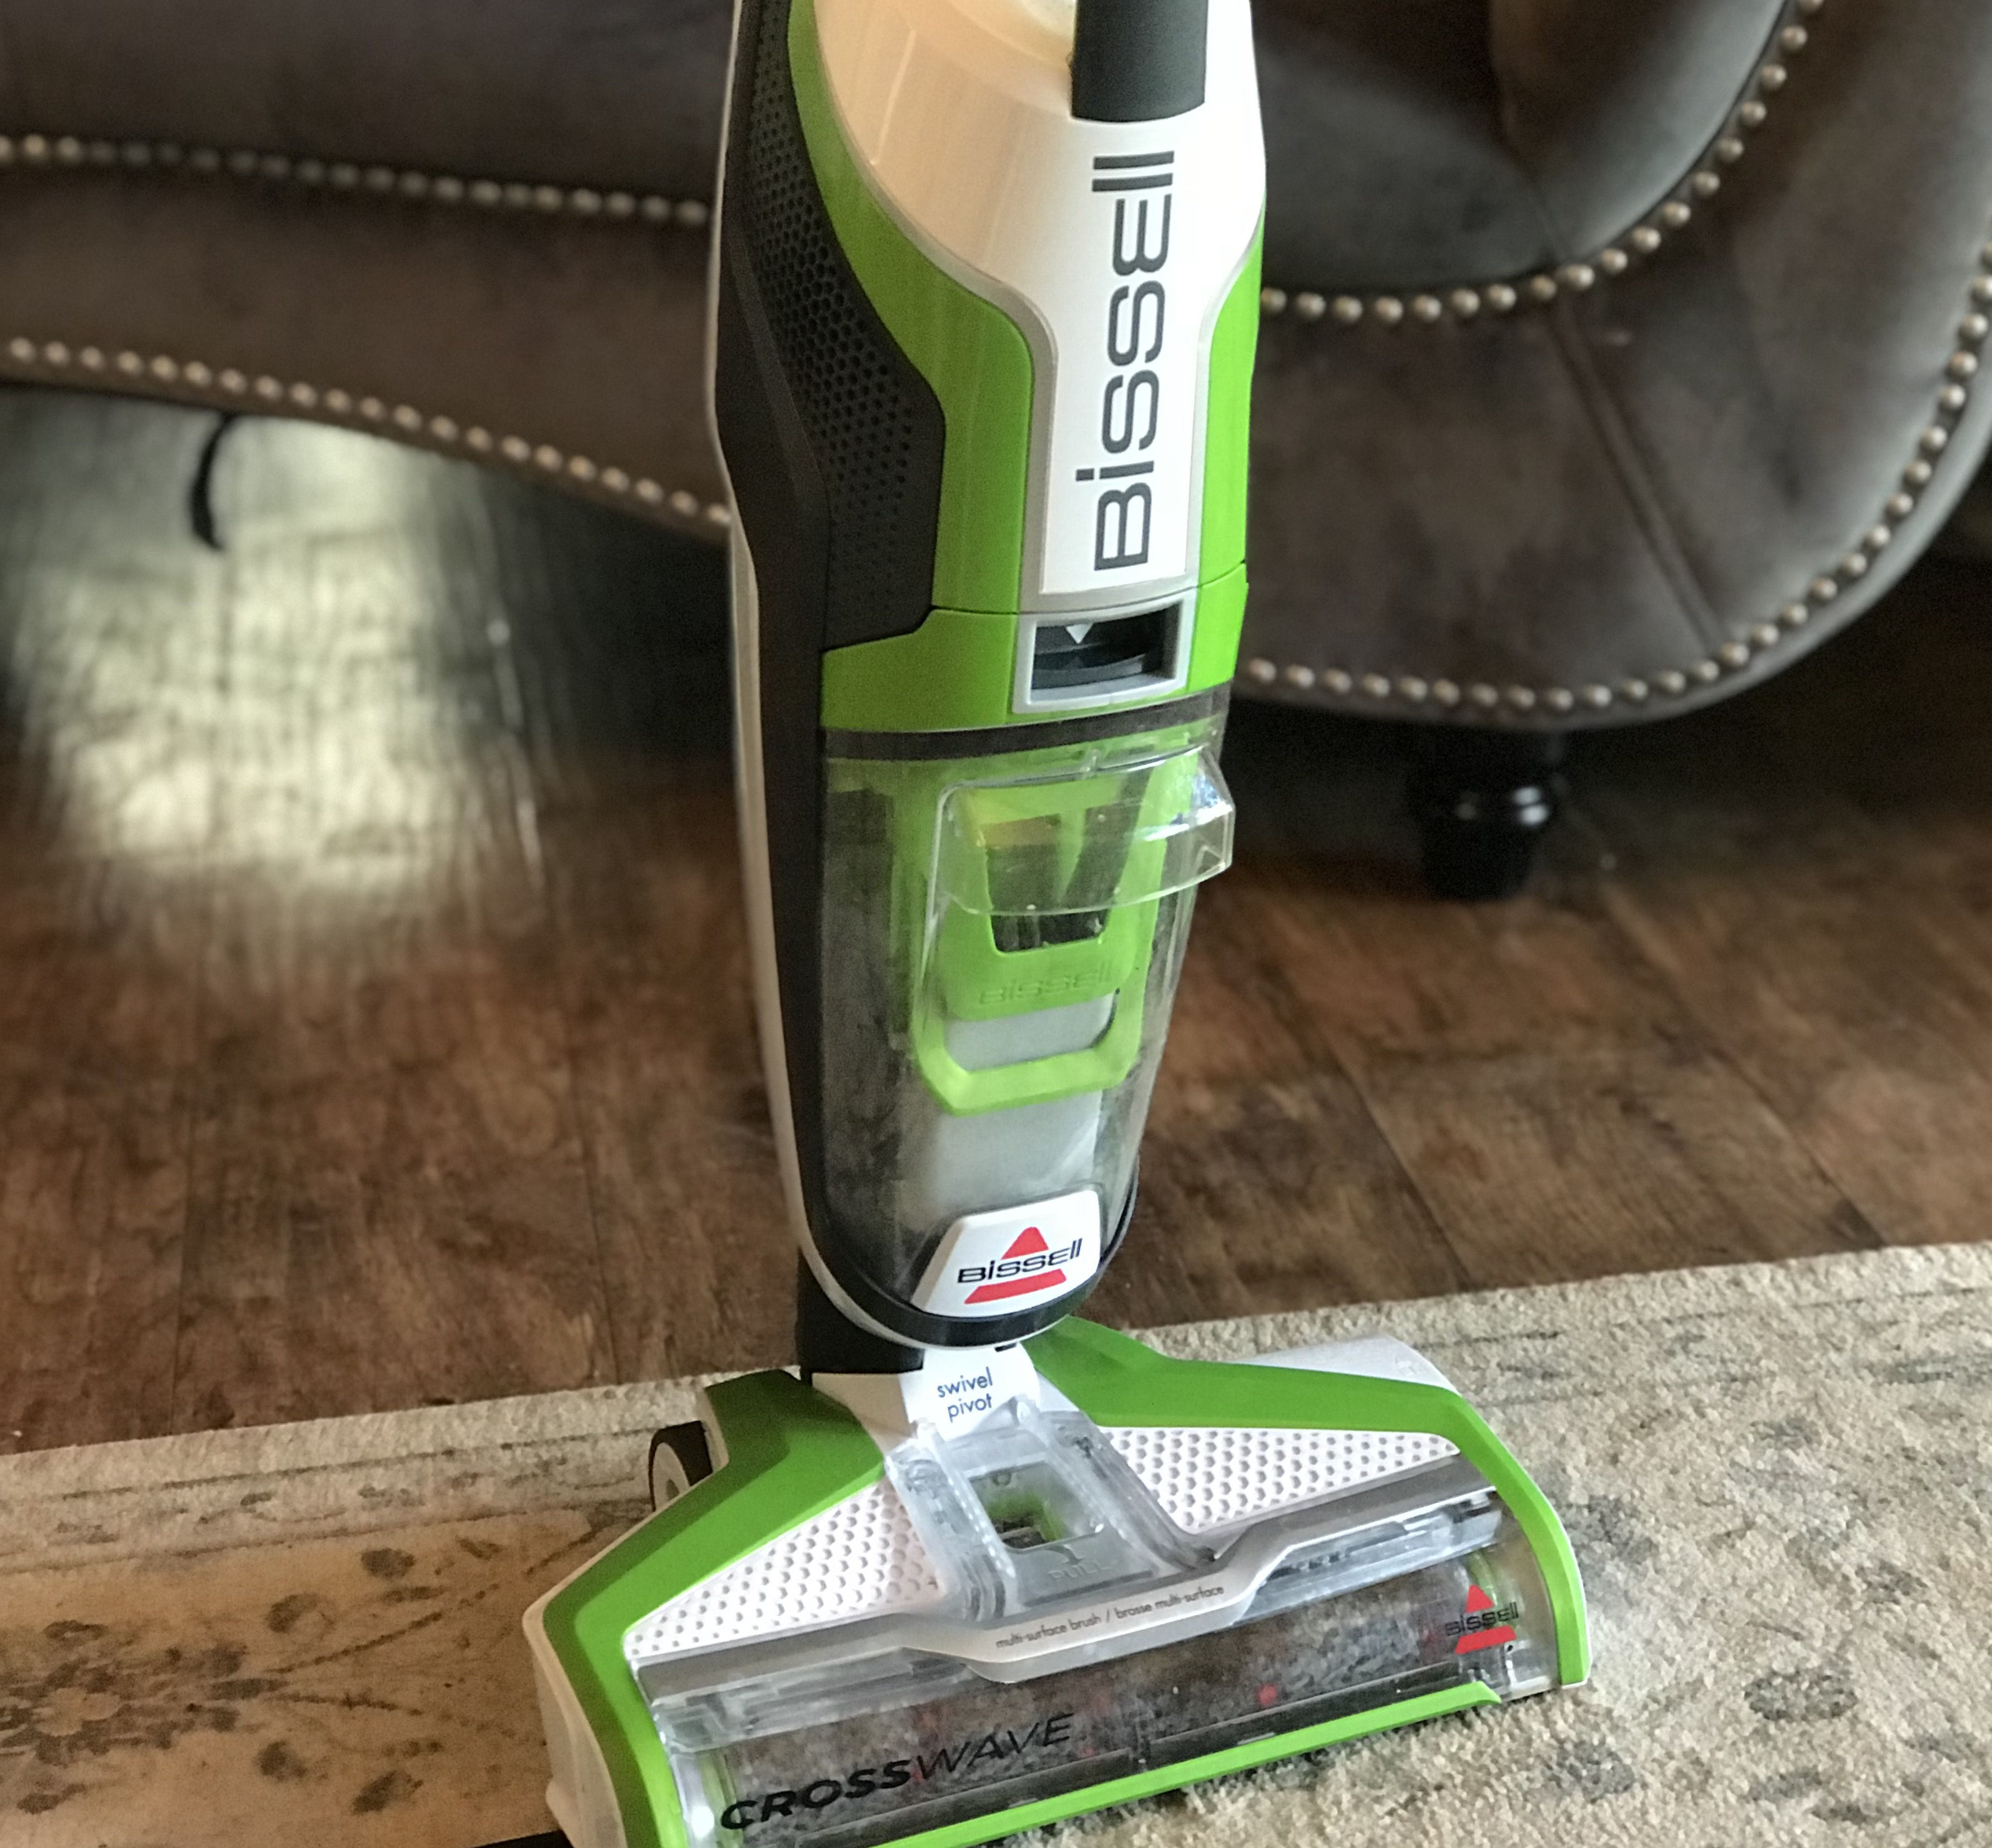 bissell wet dry vac reviews